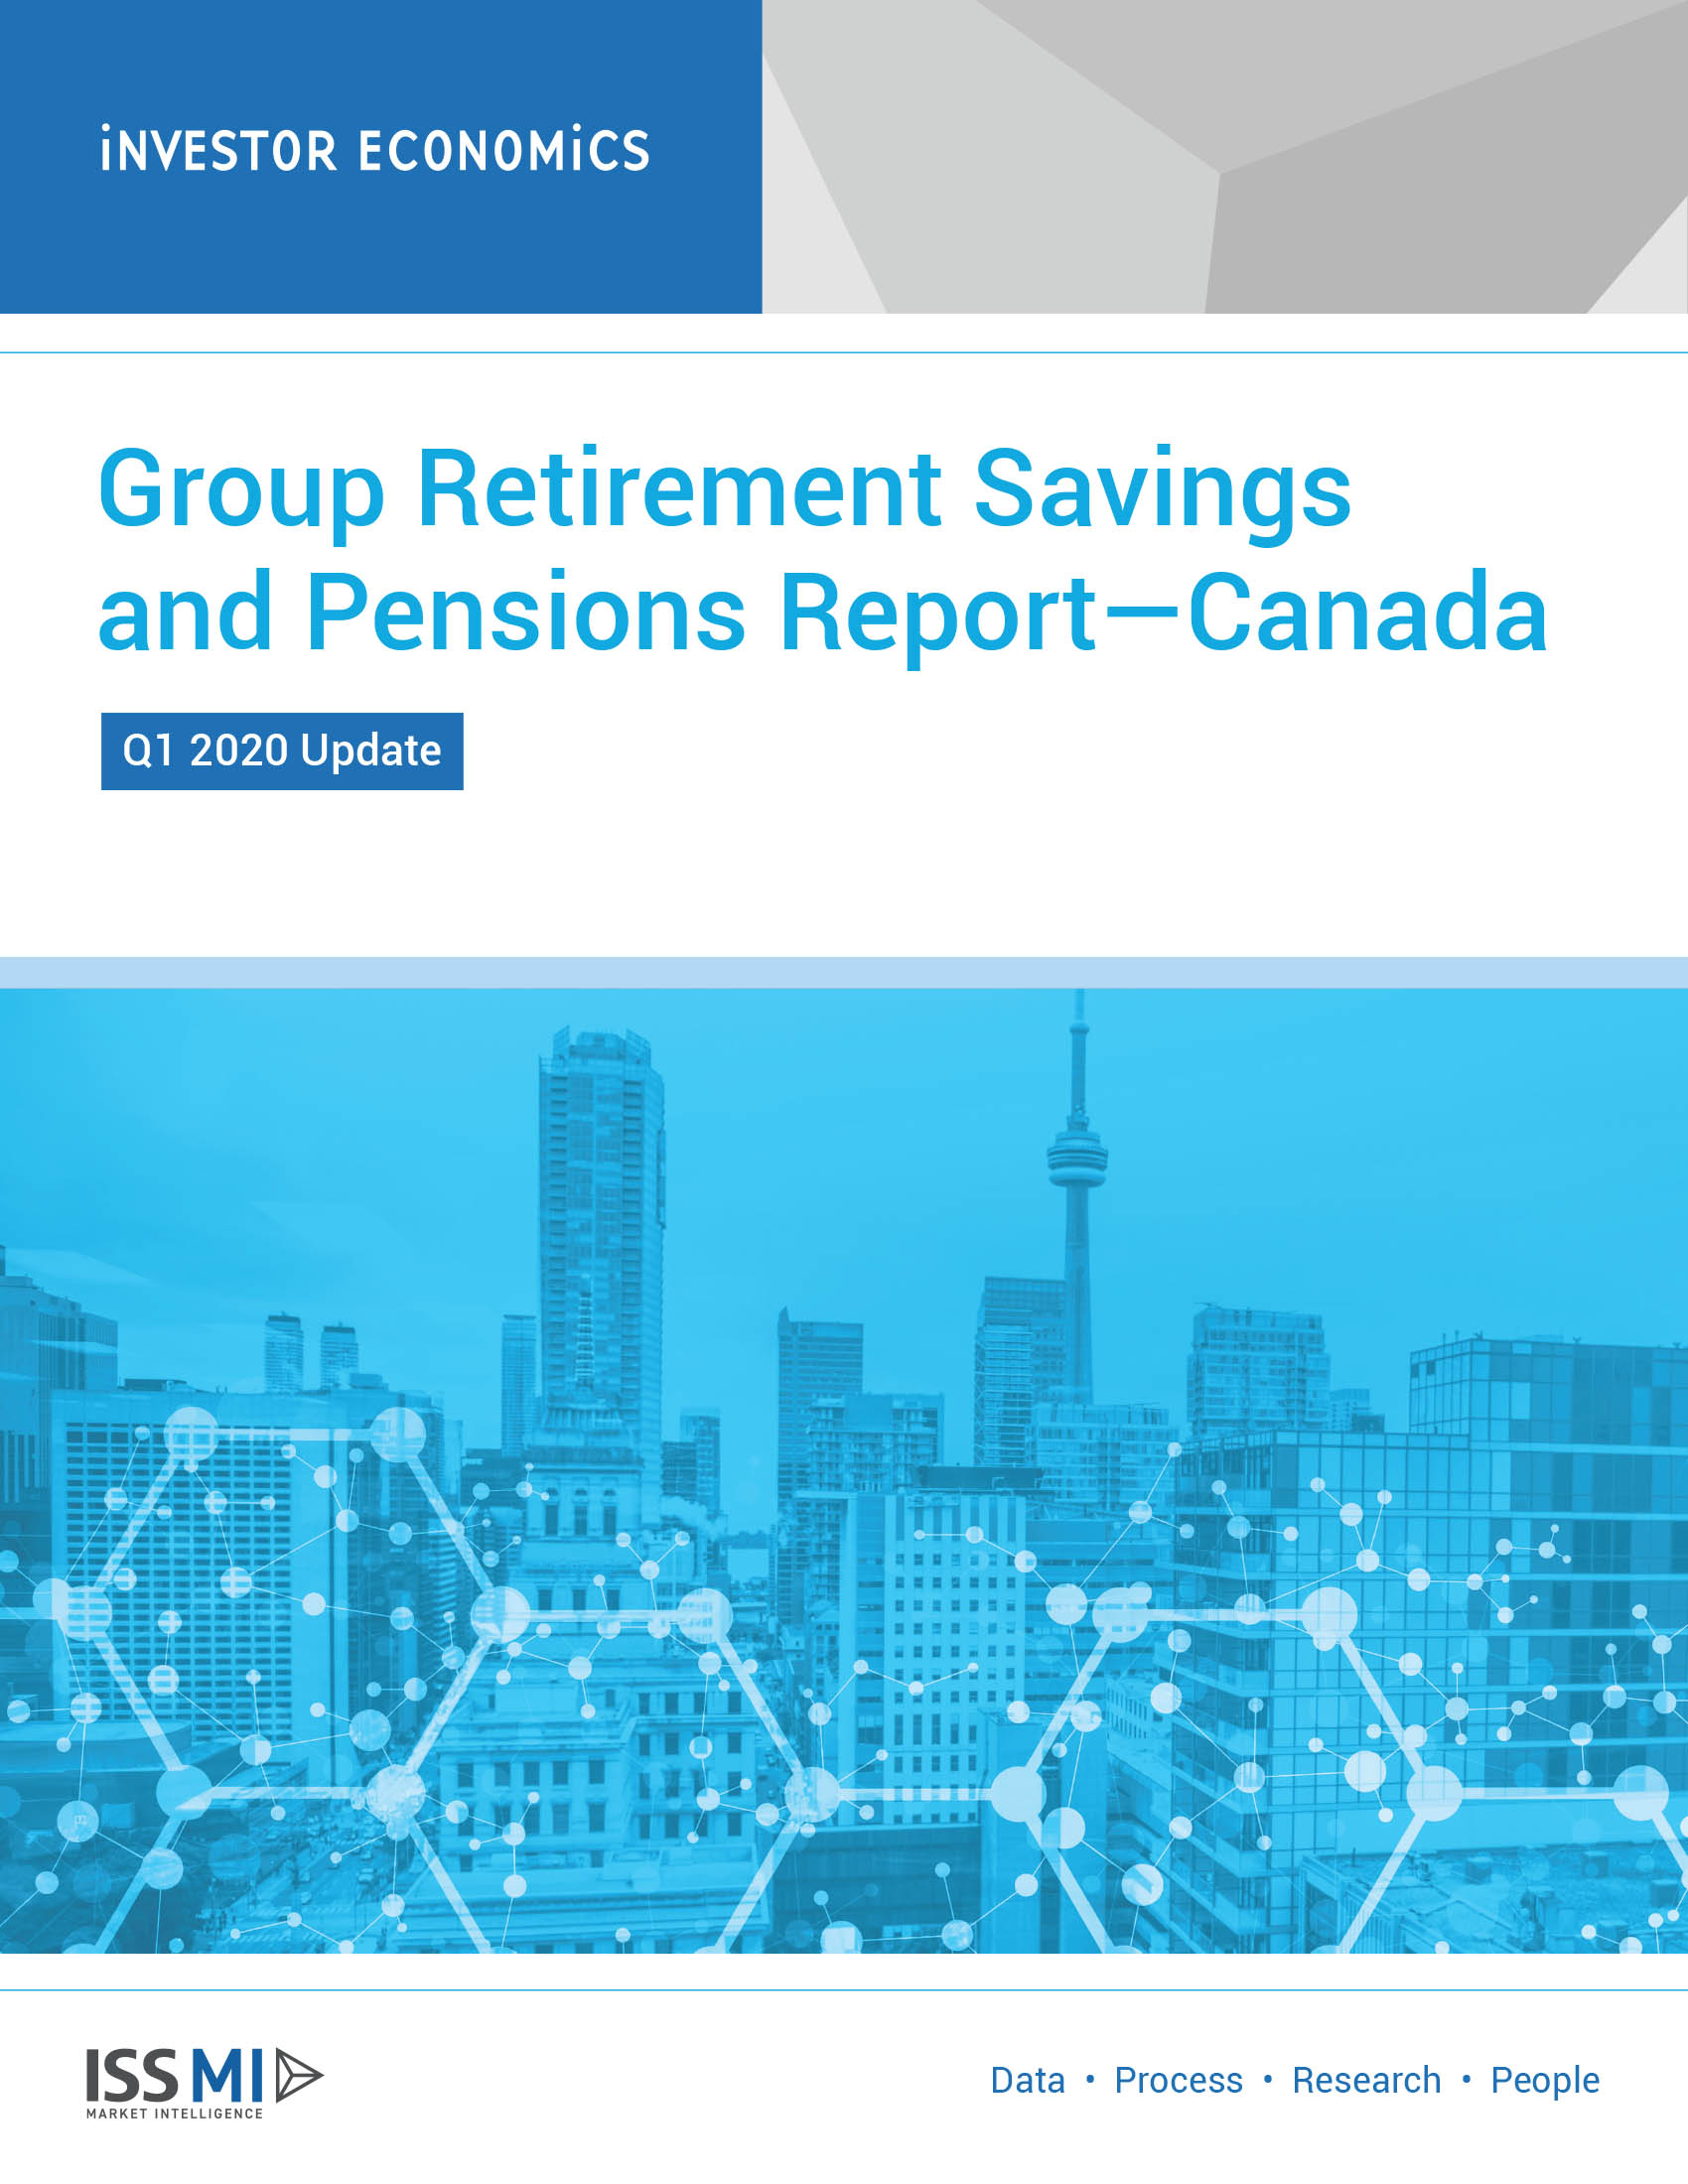 Group Retirement Savings and Pensions Report Q1 2020 Update